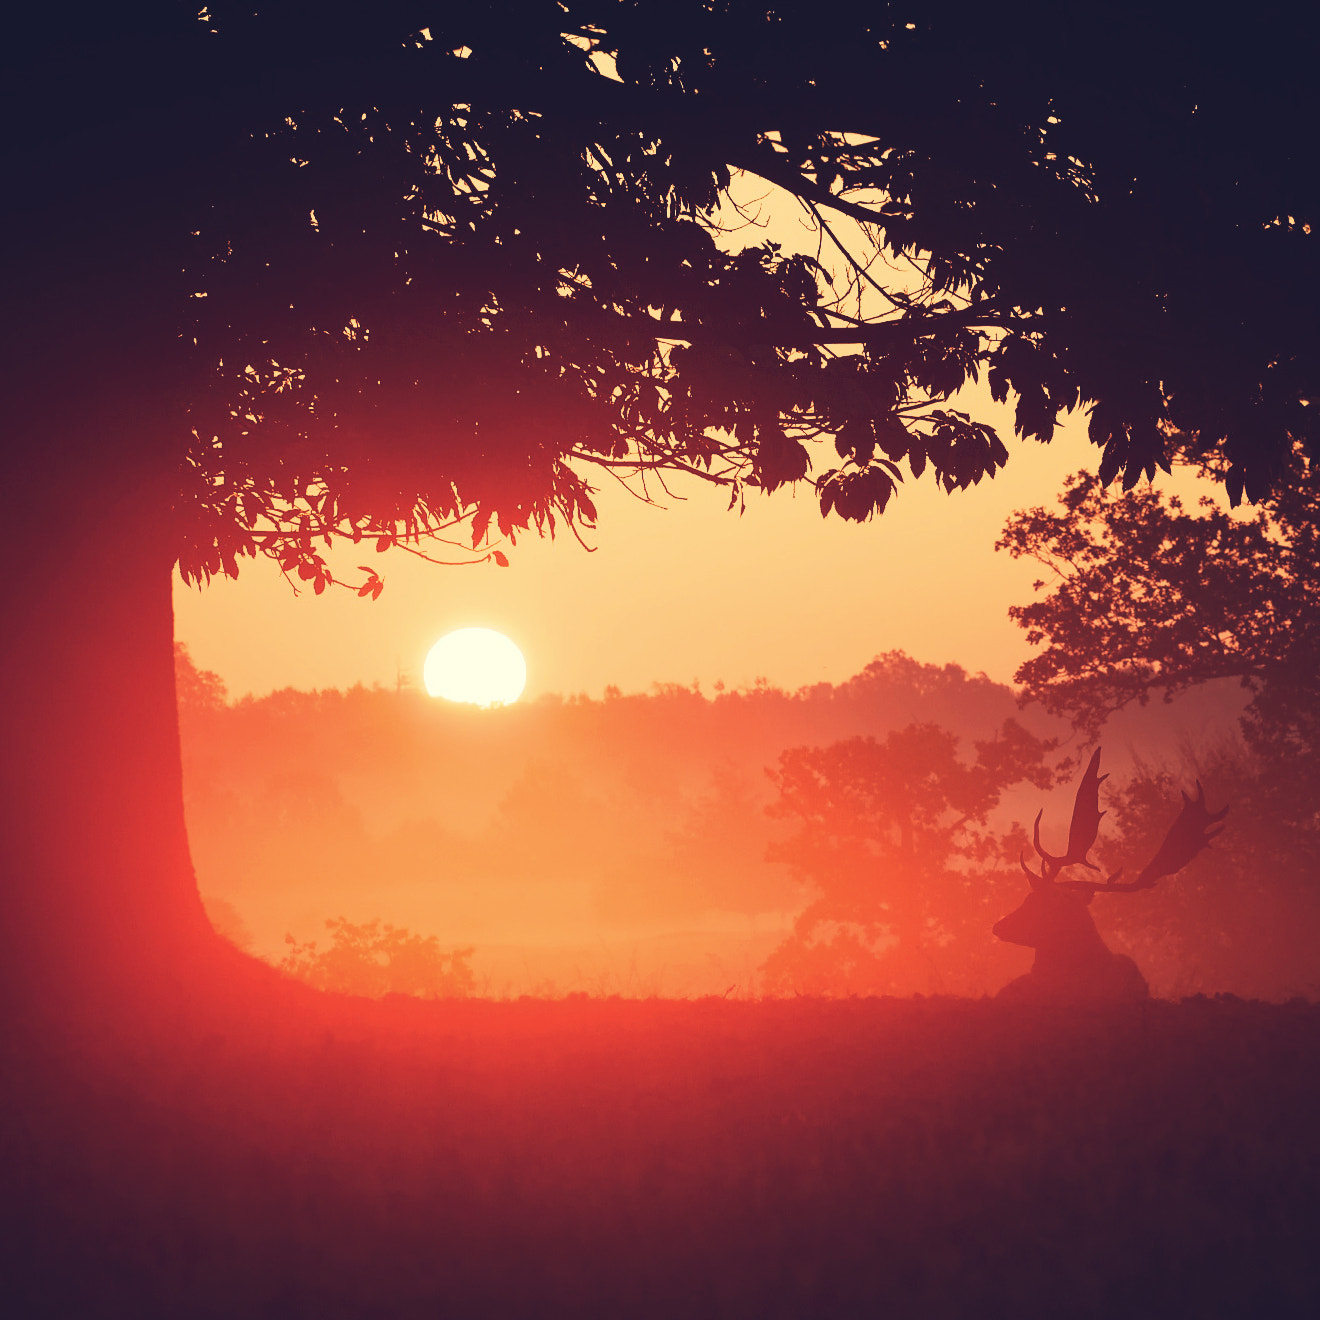 Photograph sunup by Mark Bridger on 500px